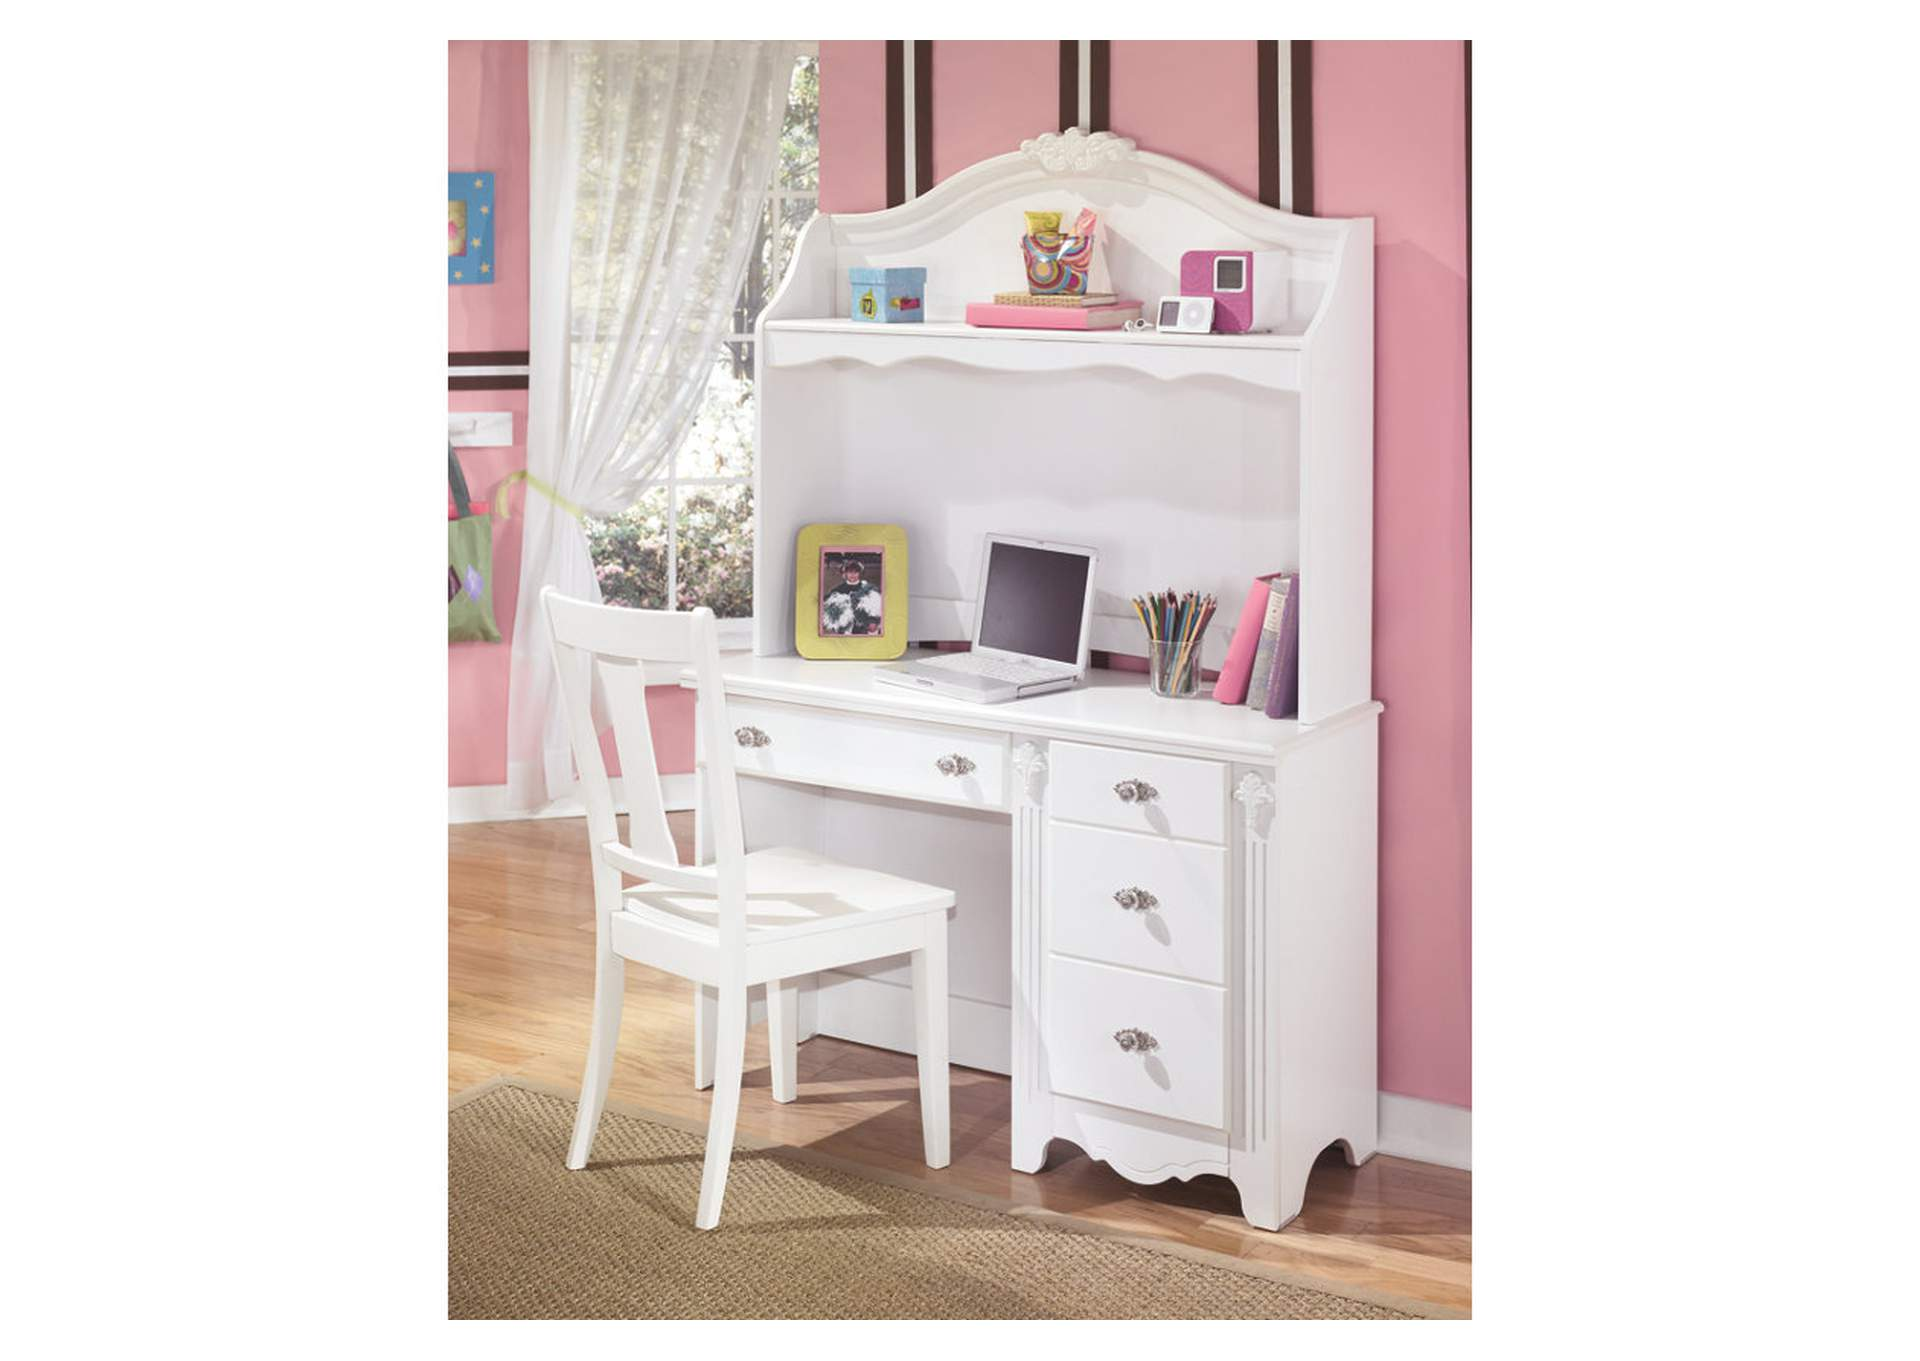 Exquisite Bedroom Desk,Signature Design By Ashley